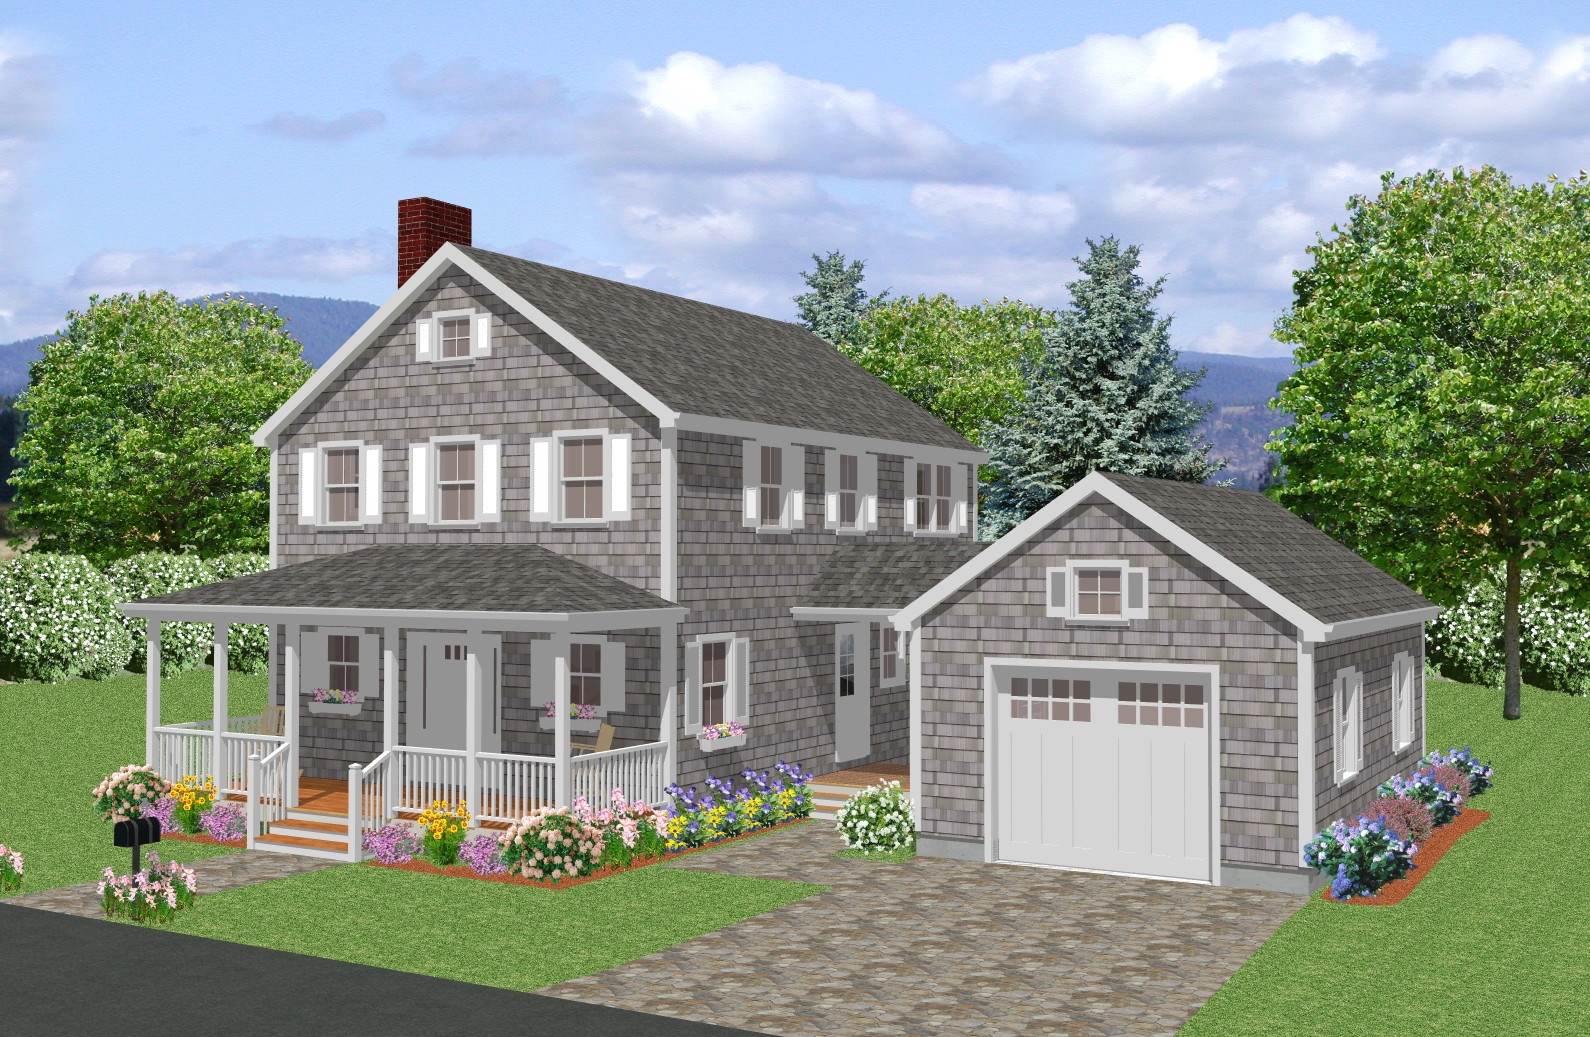 Architecture colonial houses in england for New england colonial style